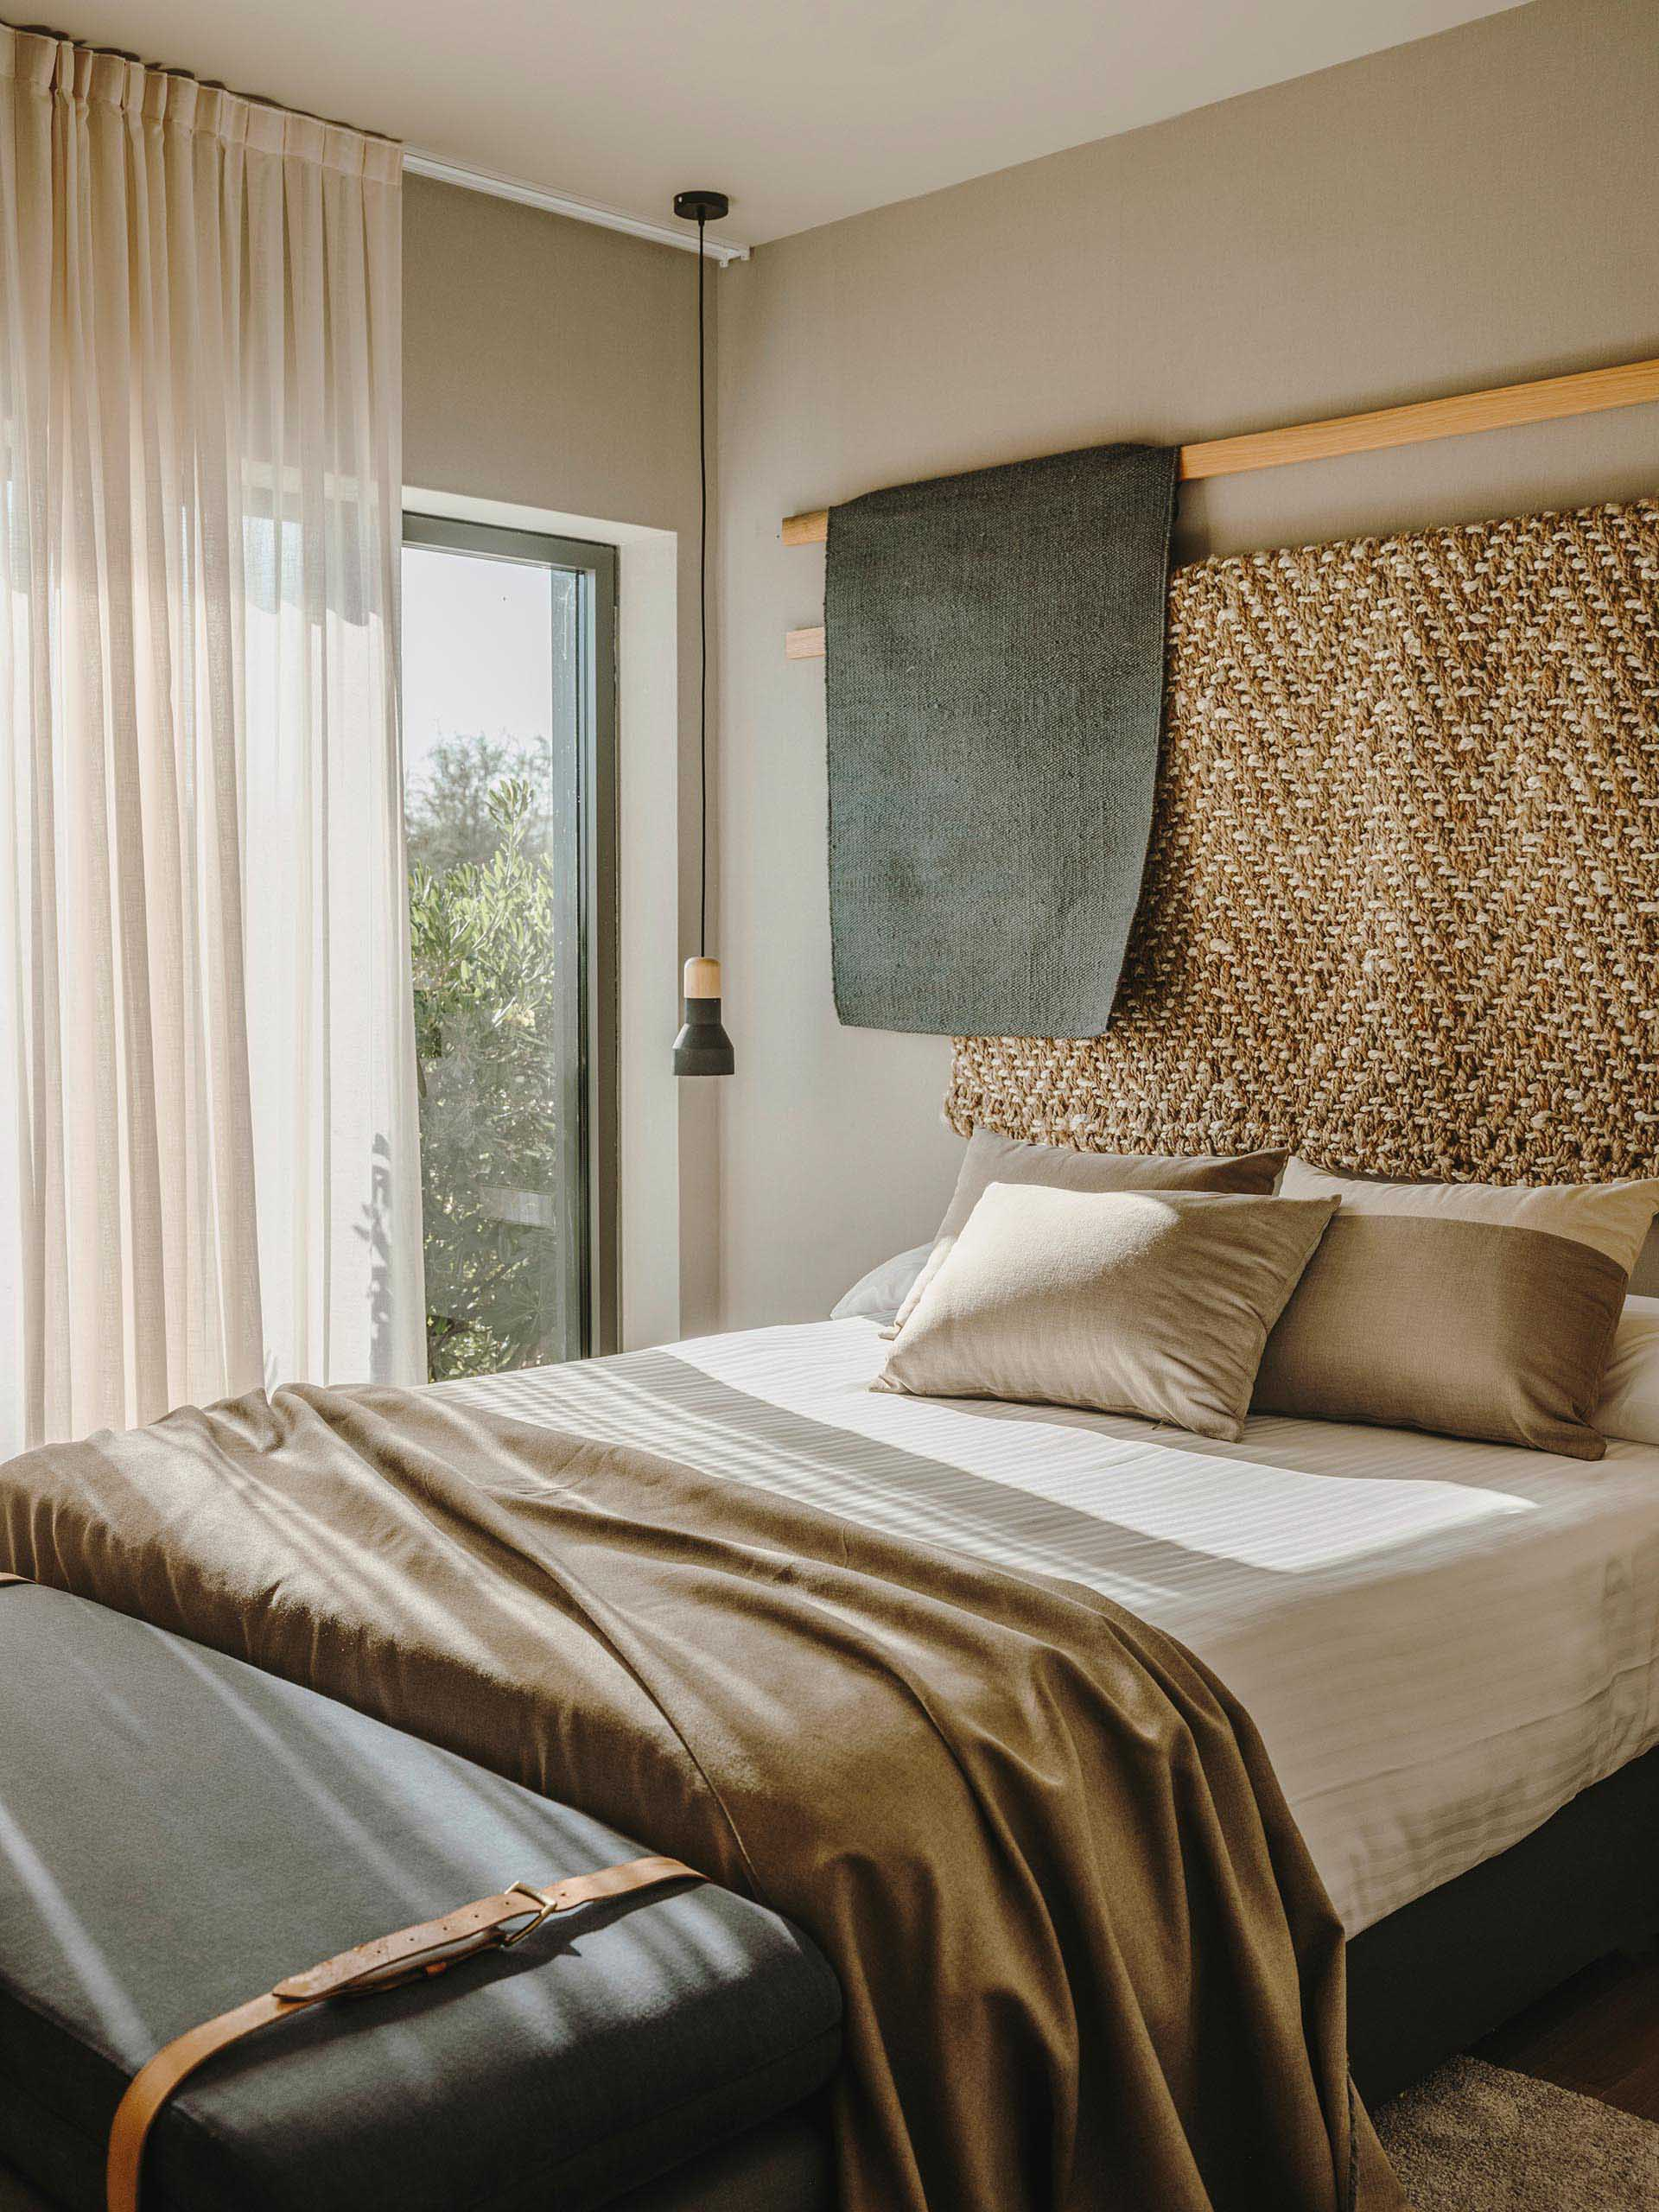 Wood lengths with draped fabric creates a unique wall decor installation in a bedroom